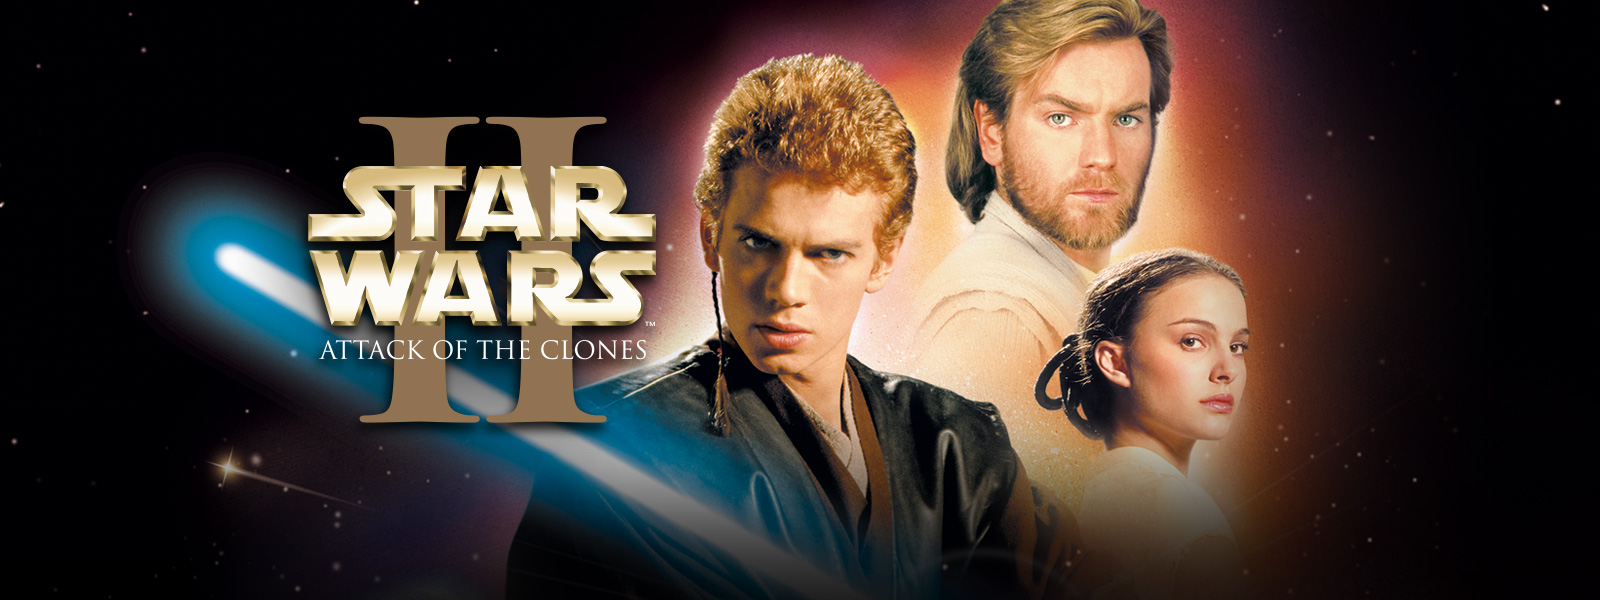 'Attack of the Clones' is the best Star Wars prequel. Fight me.